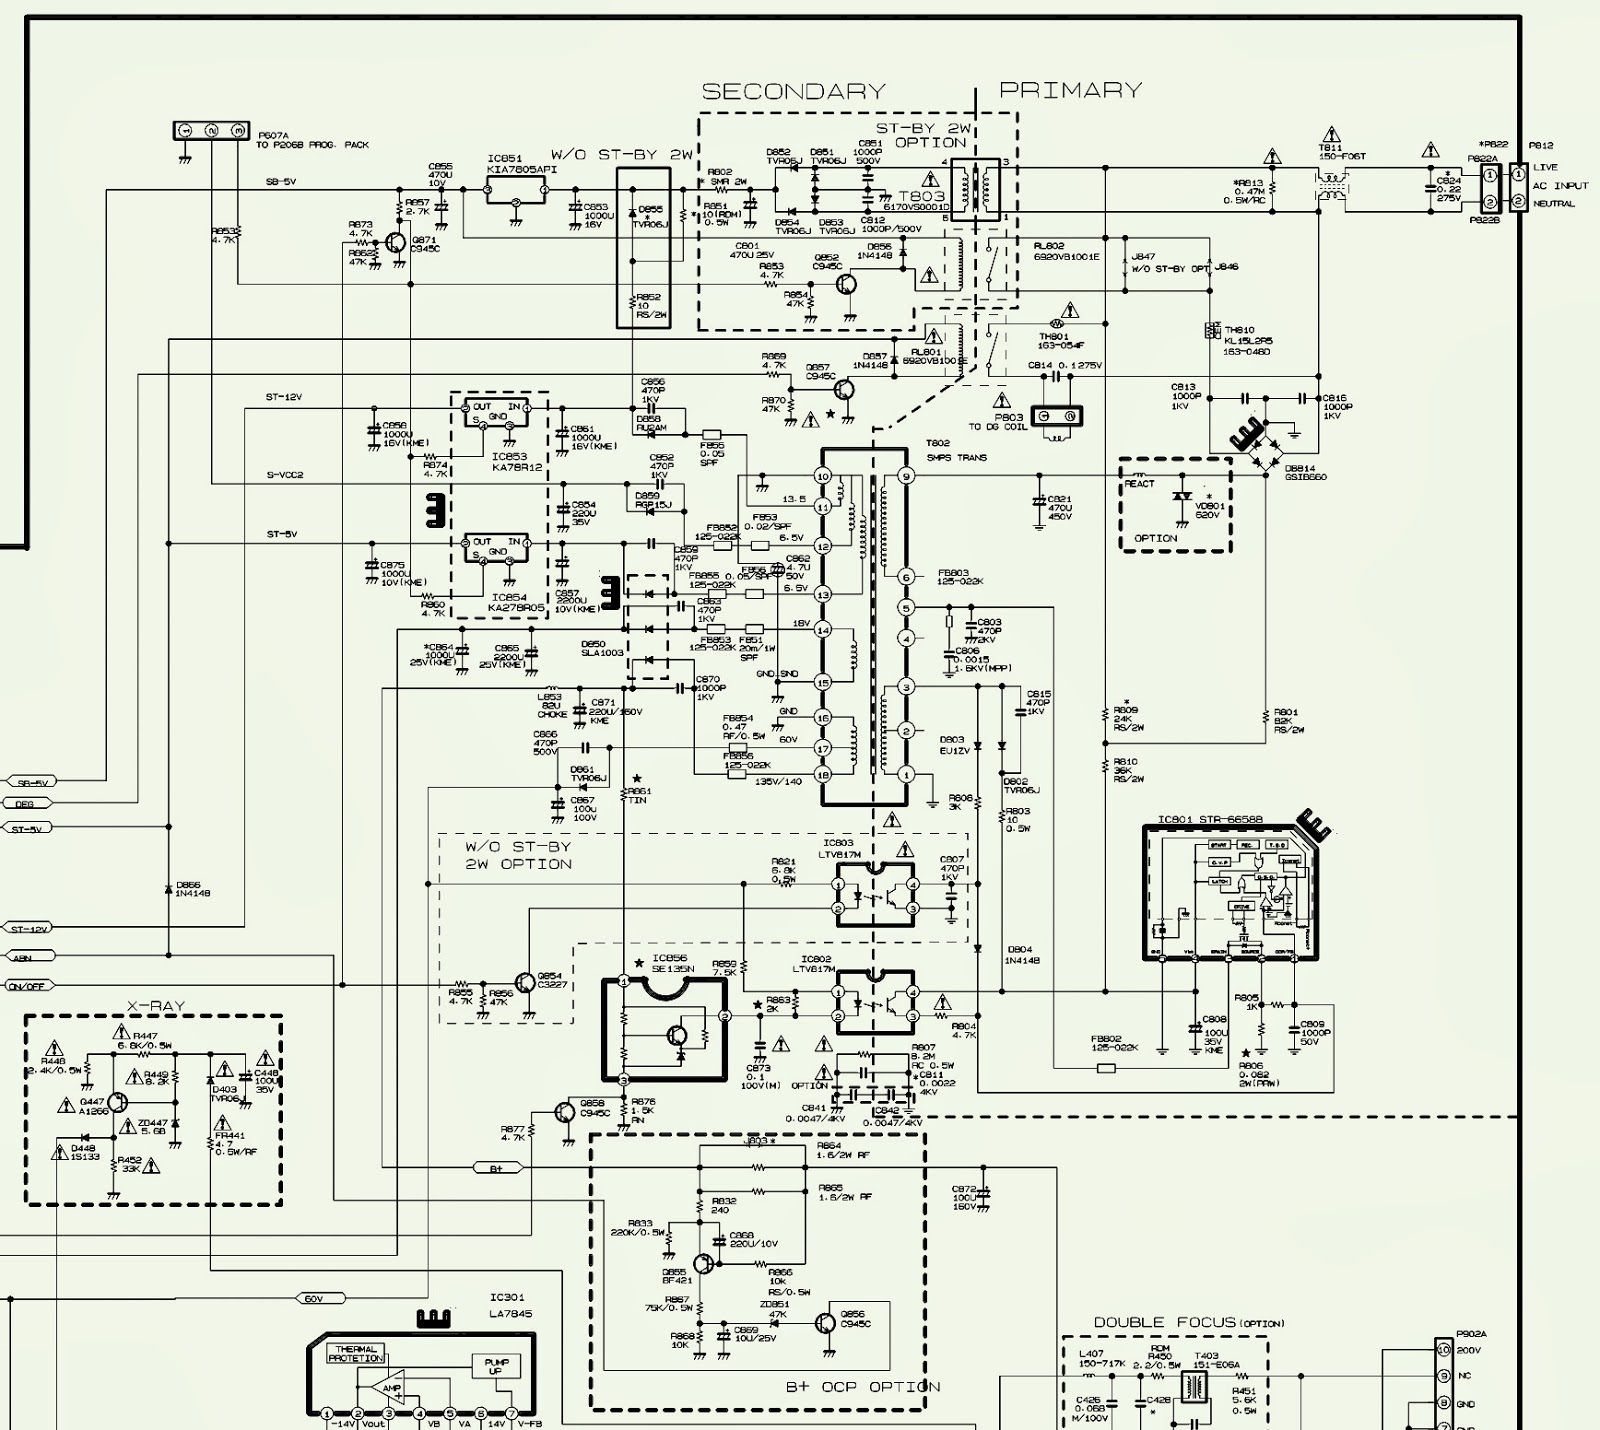 medium resolution of sansui tv circuit diagram free download circuit diagram images samsung tv circuit diagram group picture image by tag